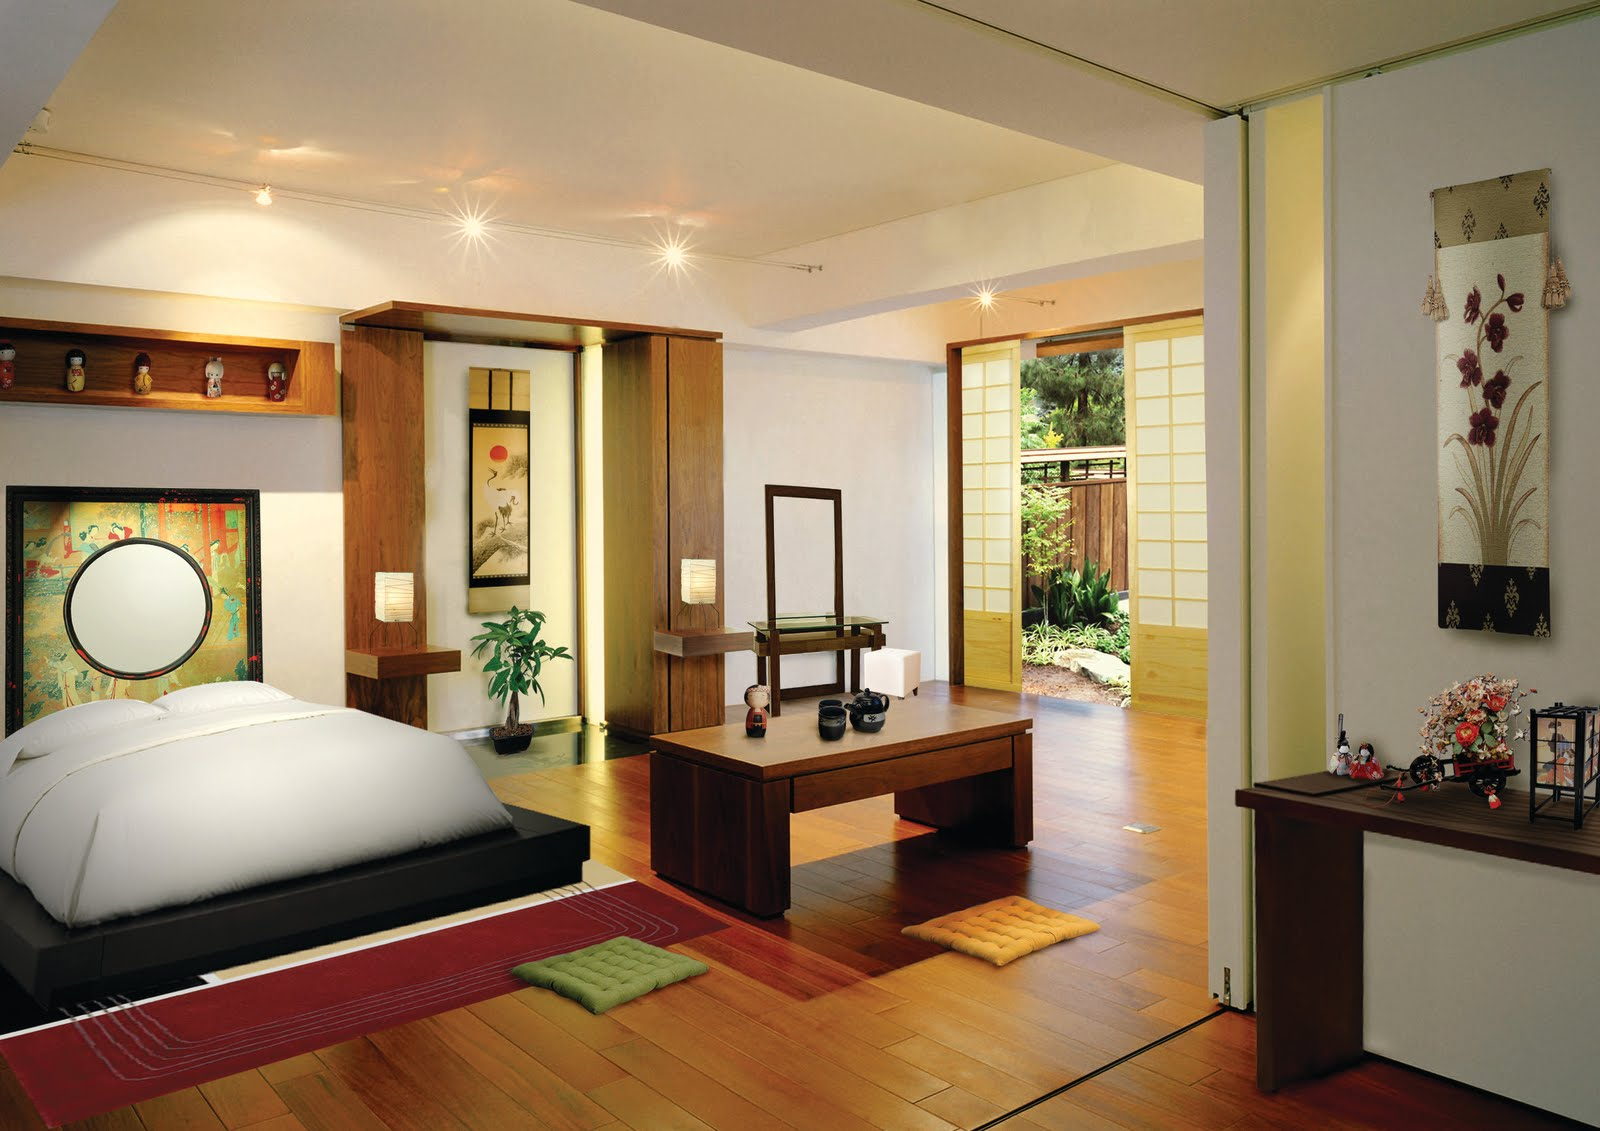 Melokumi japanese style bedroom design for Asian room decoration